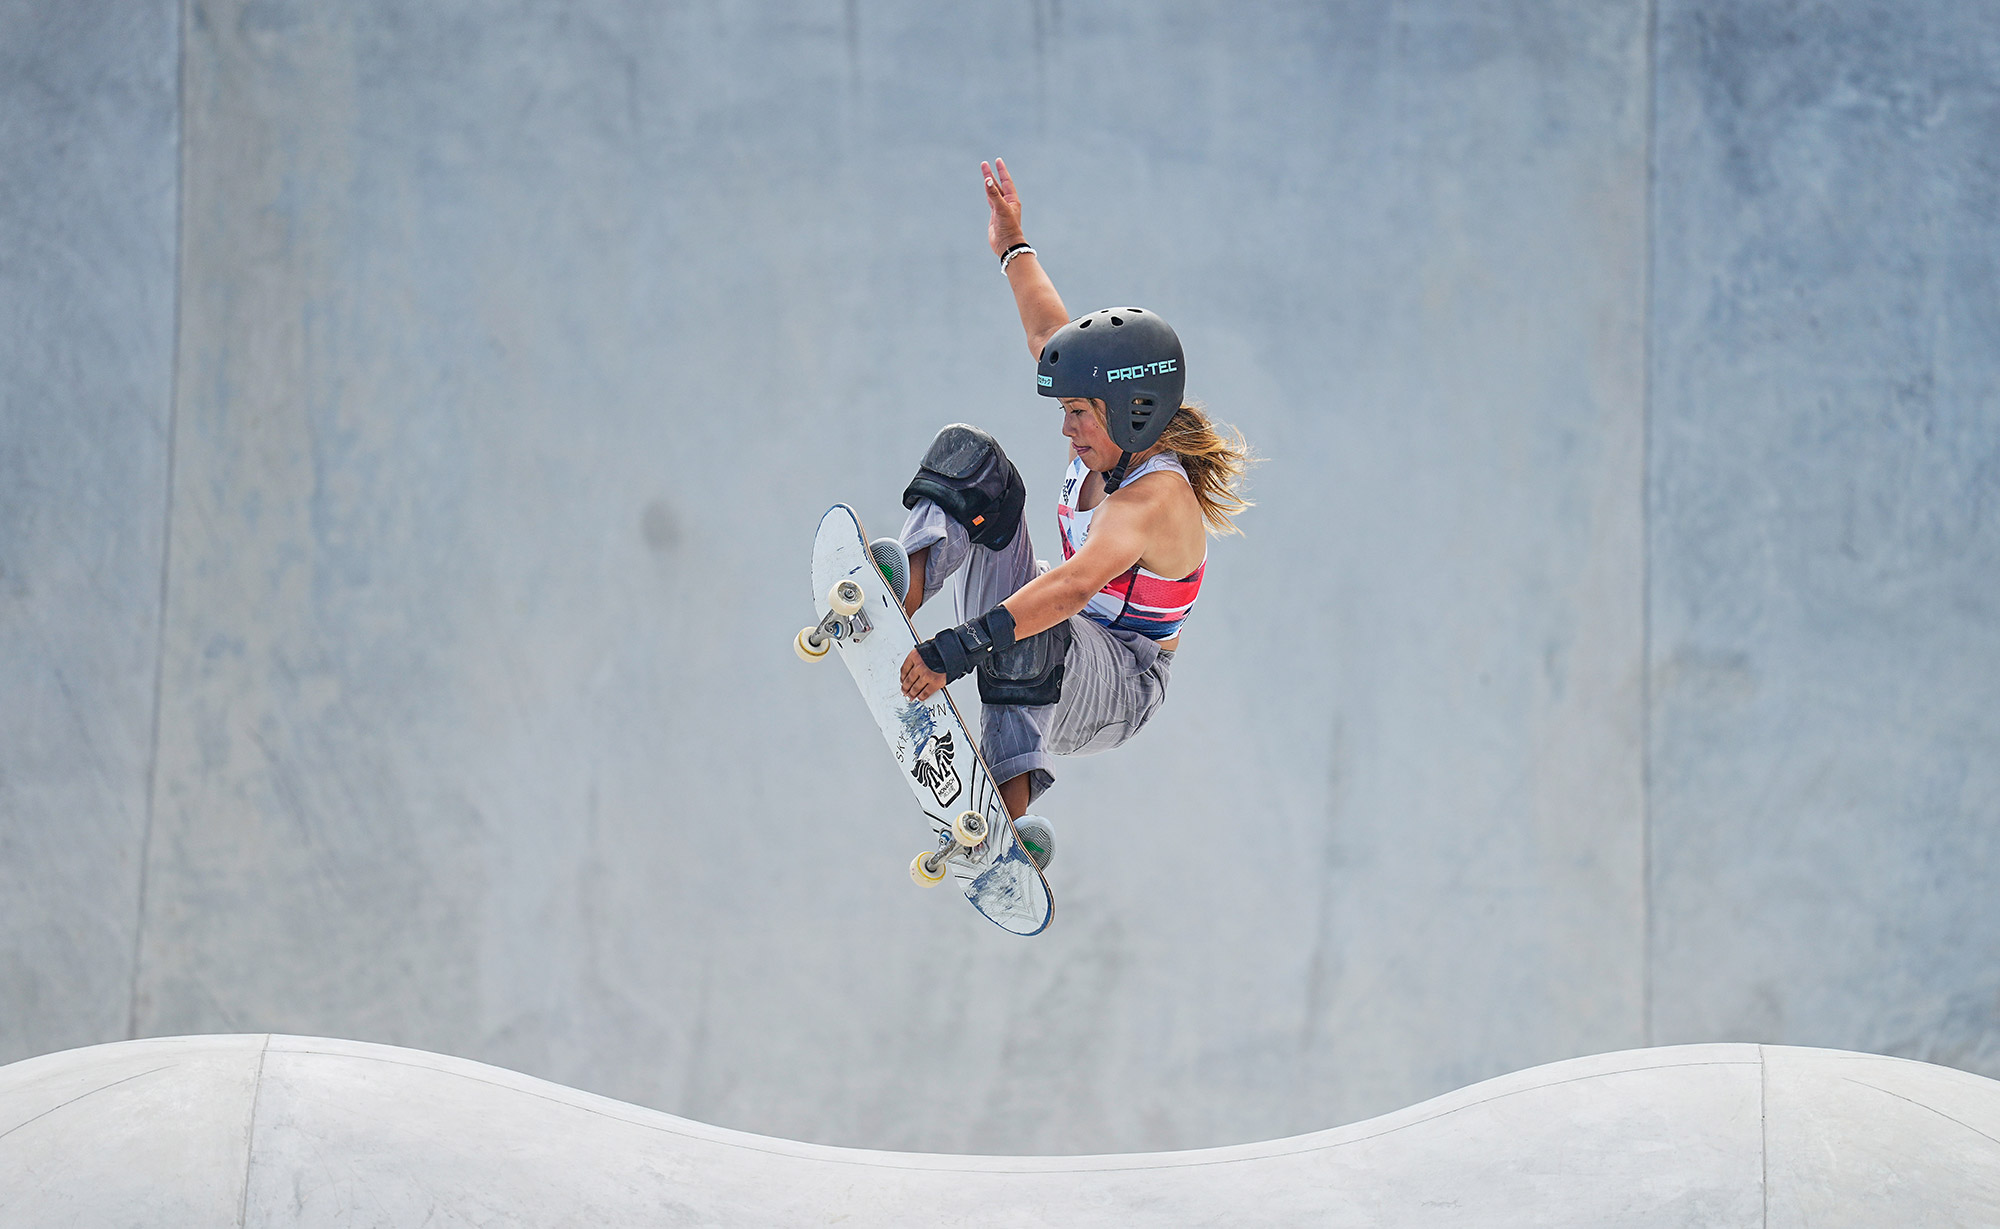 Sky Brown competes inthe park skateboarding finalon August 4. Brown, who at 13 is Great Britain's youngest-ever athlete to compete in the Summer Olympics, won a bronze medal. Japan's Sakura Yosozumi won the gold, and her compatriot Kokona Hiraki won the silver. Hiraki is just 12 years old.